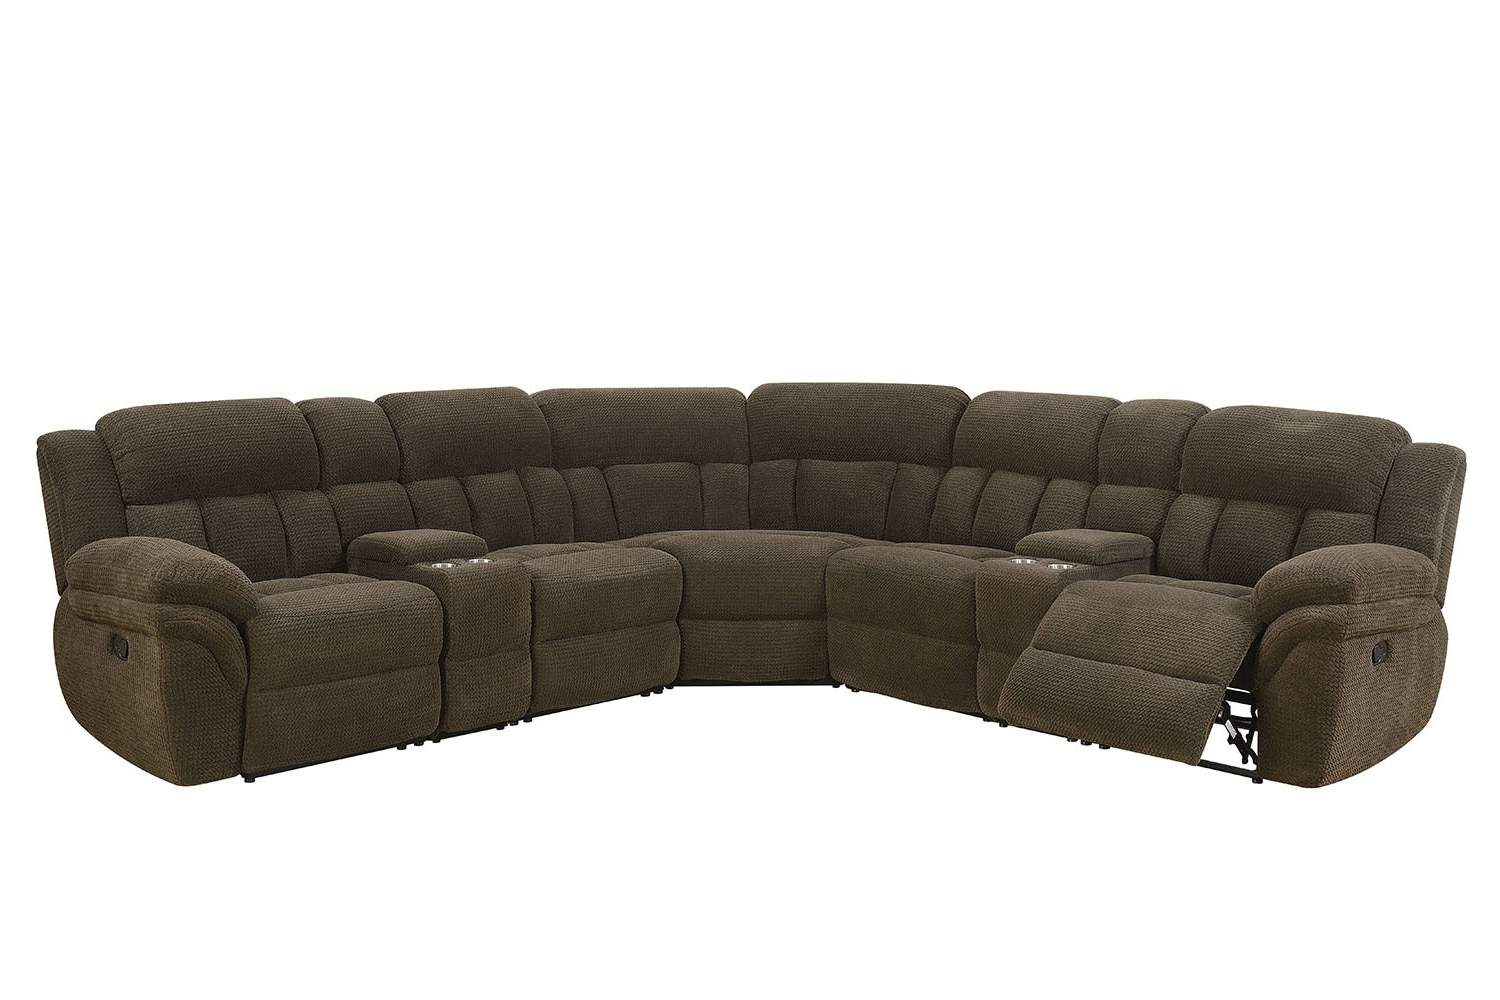 Famous Aspen 2 Piece Sleeper Sectionals With Raf Chaise With Sectional Sofas (View 9 of 20)